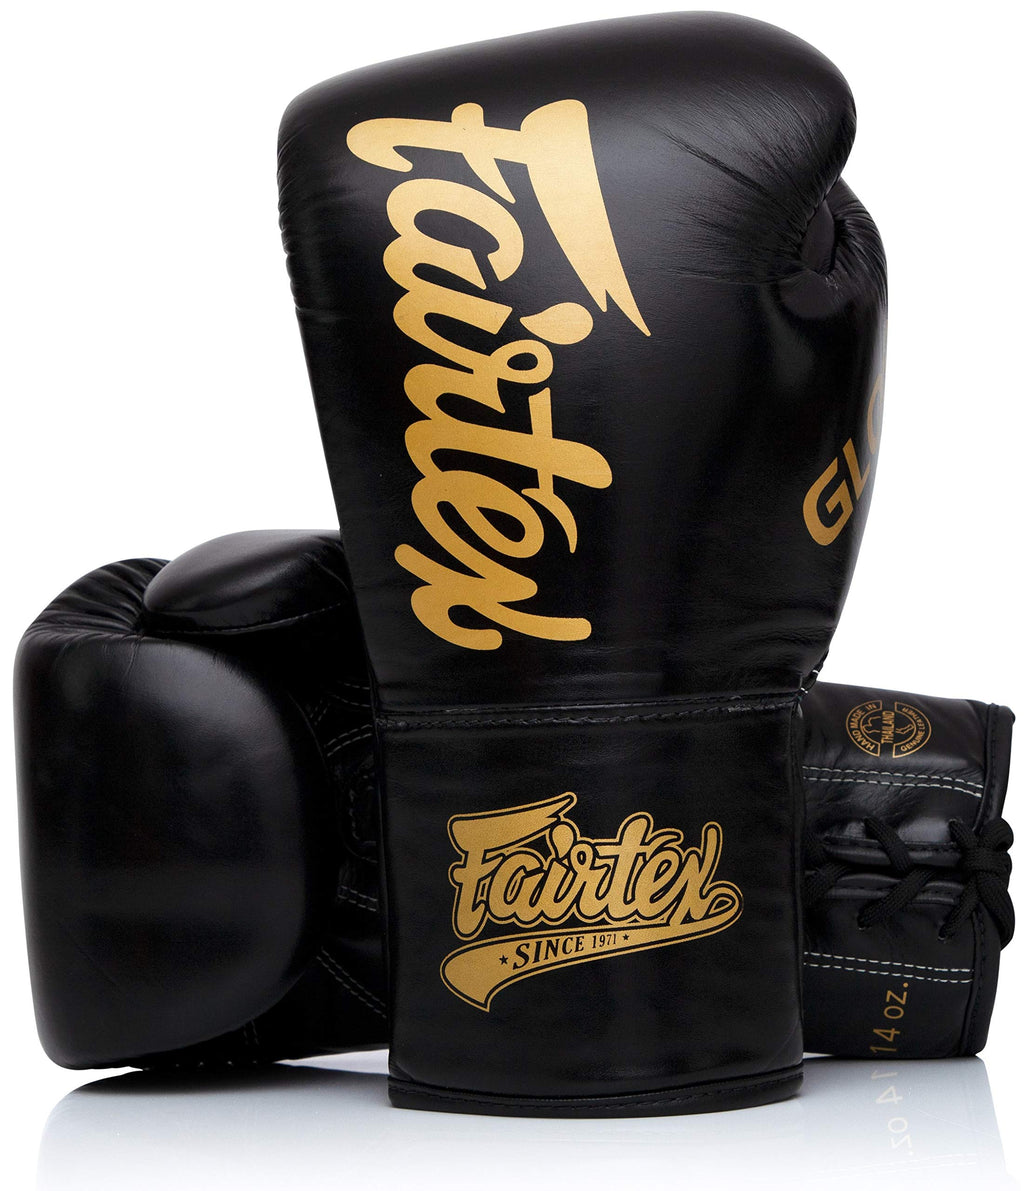 Fairtex BGLG1 Black Kick Boxing Glove - Fairtex Store